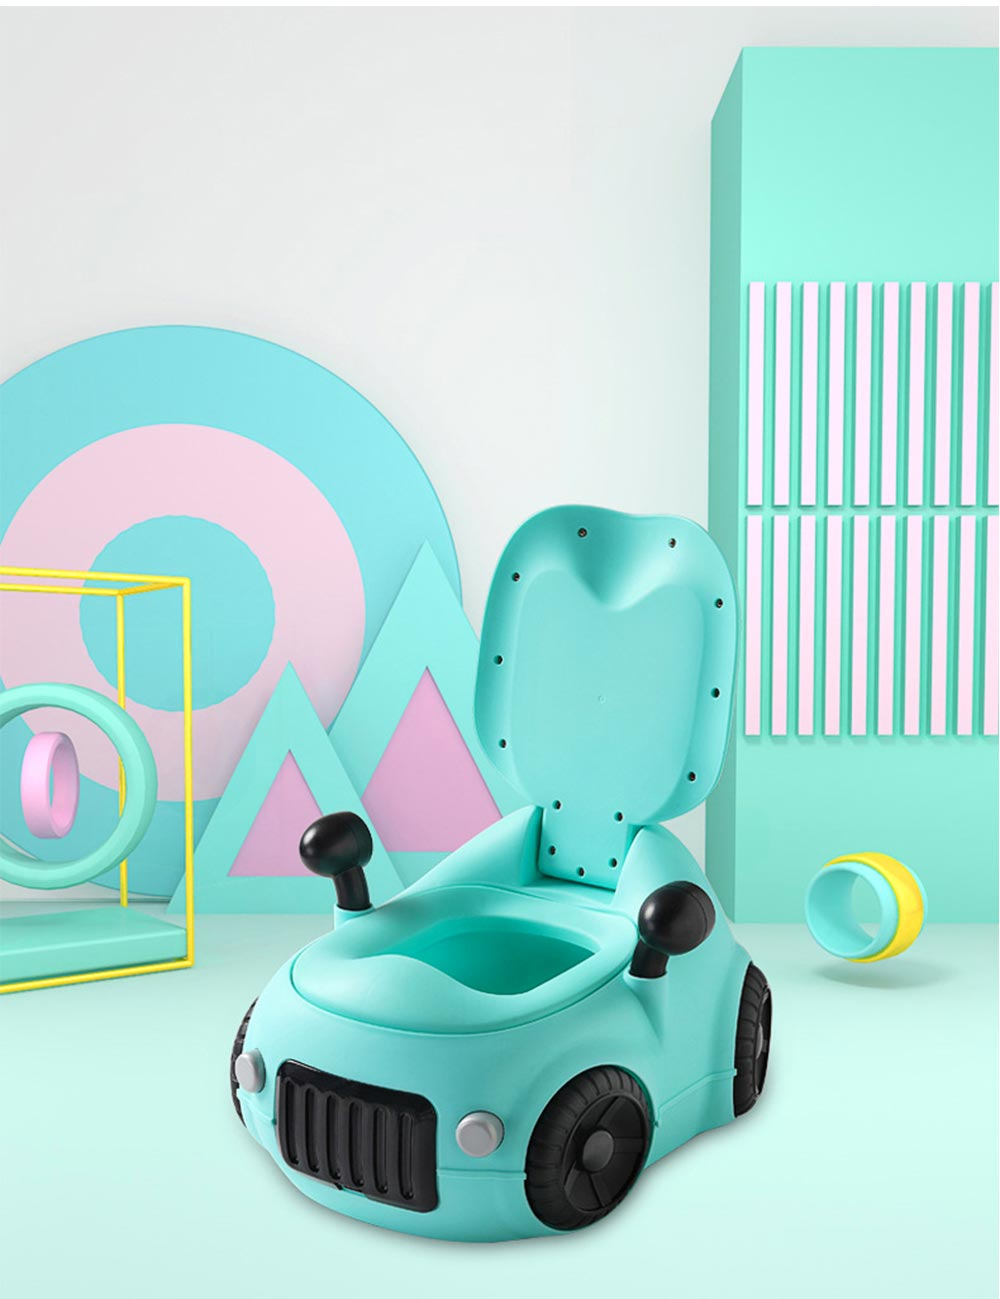 Baby Potty Car, XL Children'S Toilet For Boys And Girls, With High Back Ridge Design 3